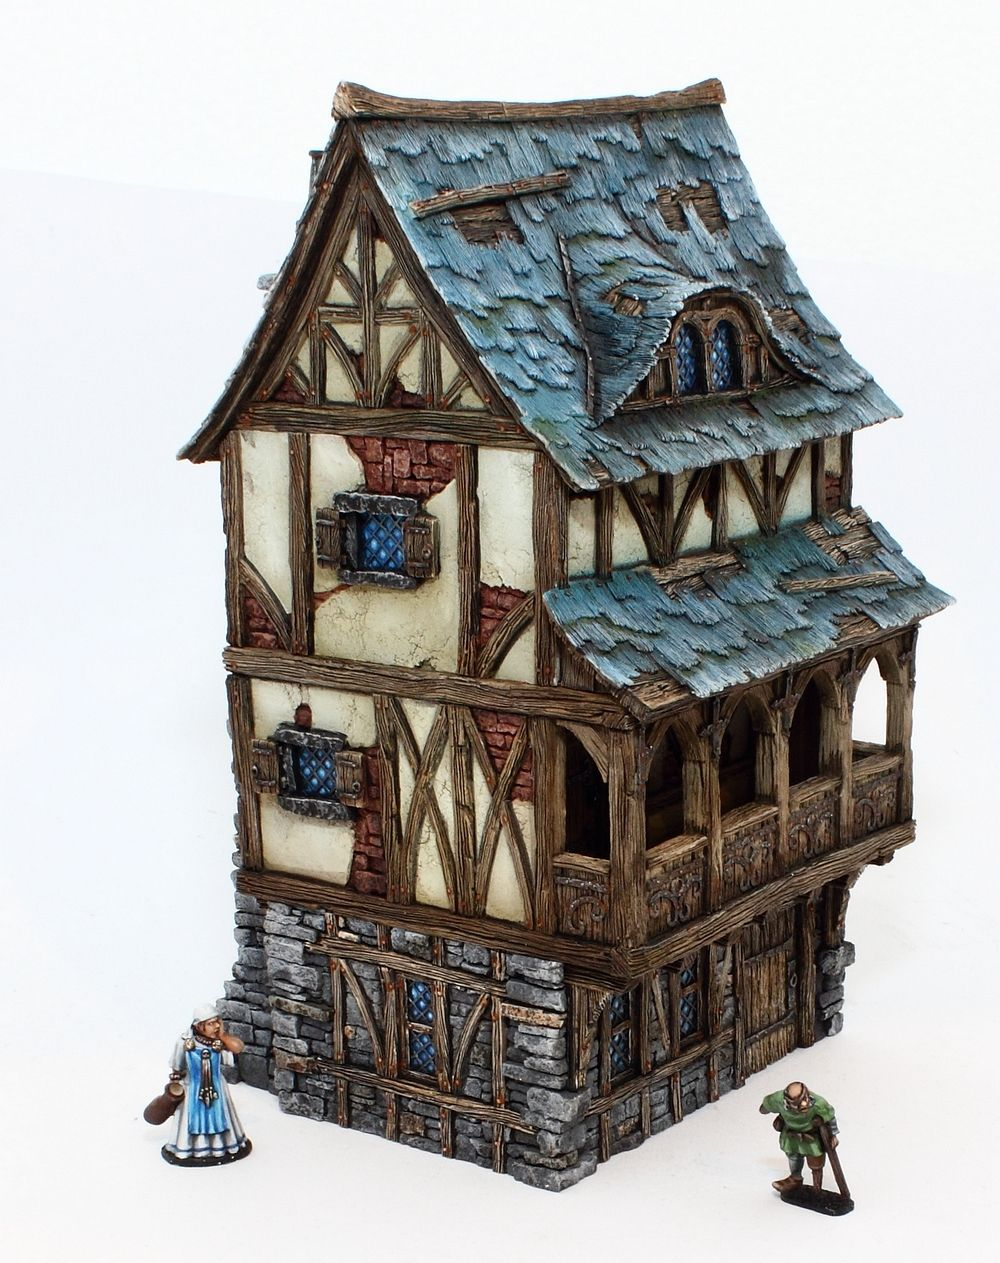 Review: Tabletop World Townhouse II